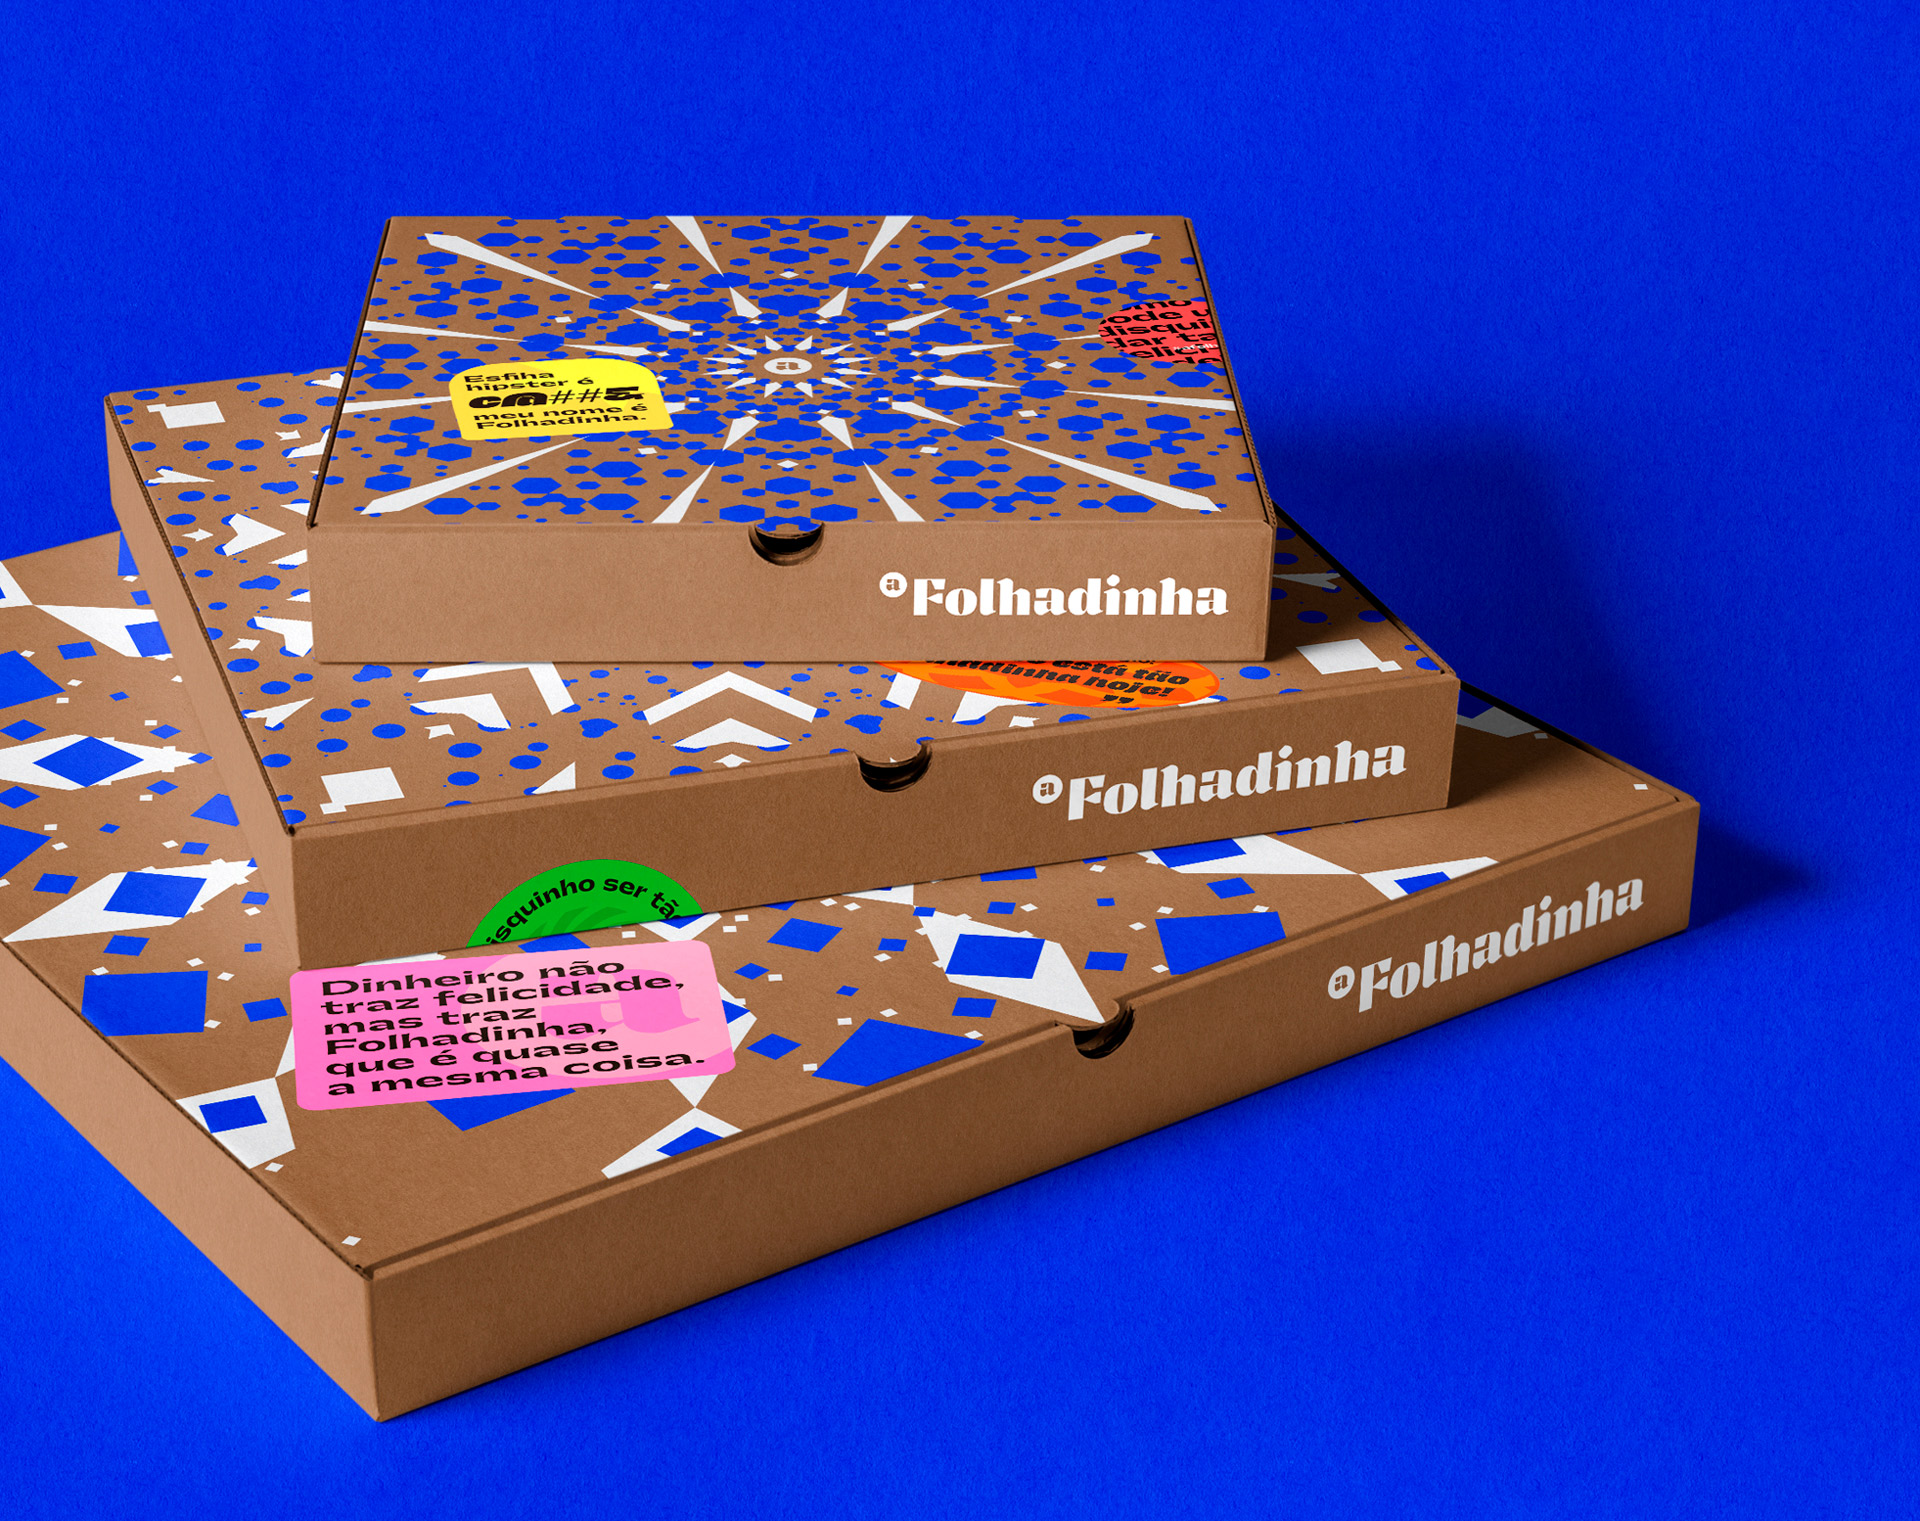 Folhadinha Arab Restaurant Packaging and Branding by Add Branding